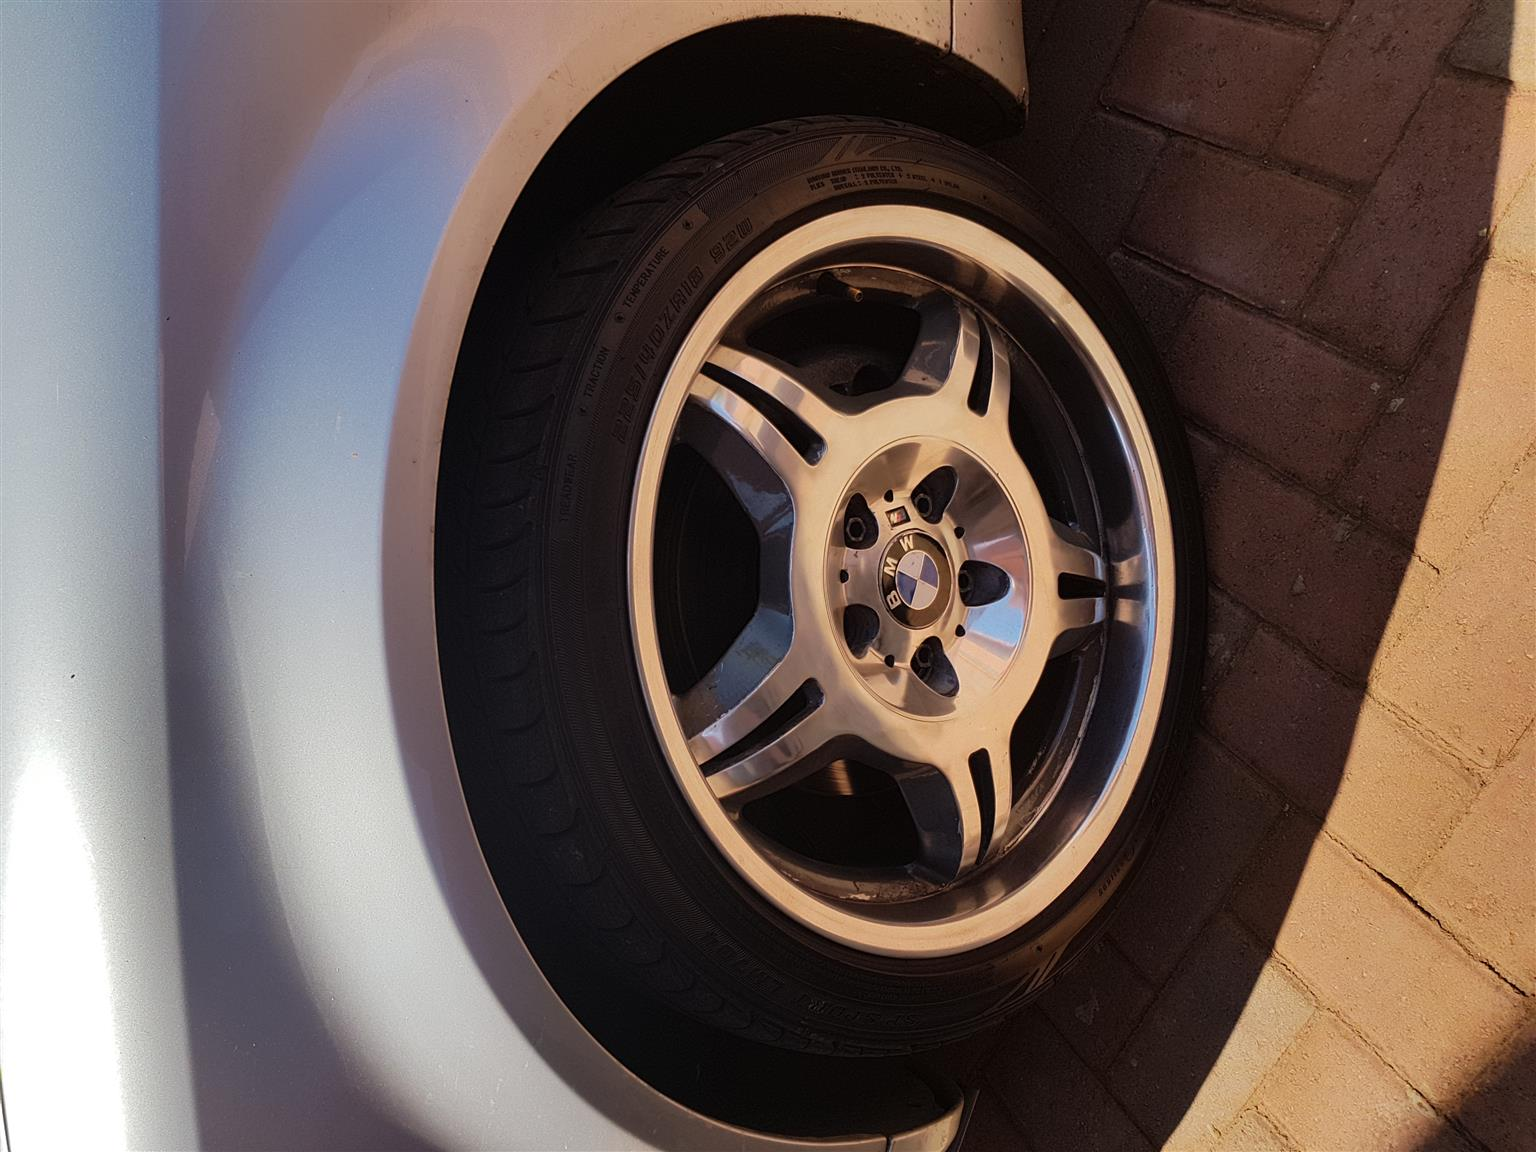 M3 wide narrow for Audi wheels or R5000